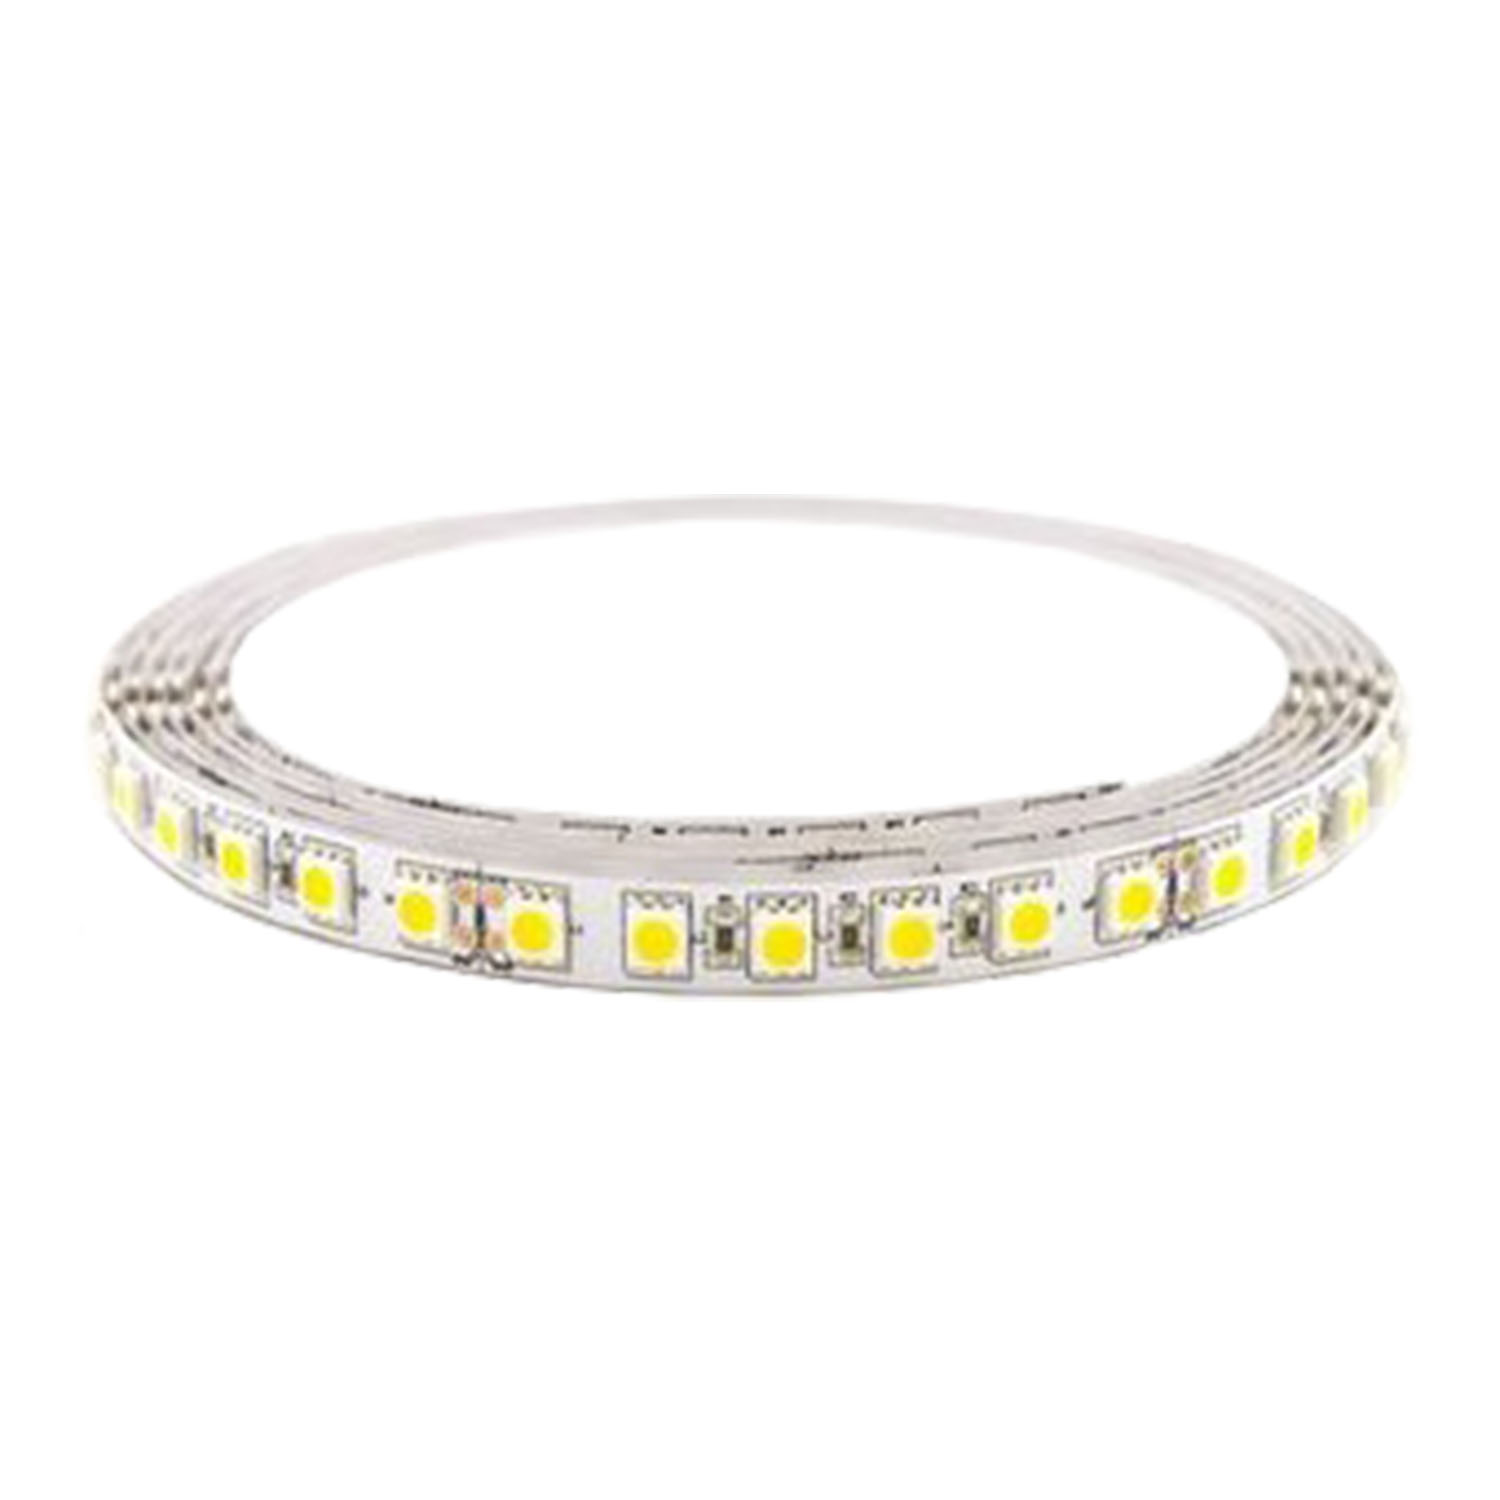 LED Strip 24V<br />96 LED's 23W/m<br />warmwit IP65